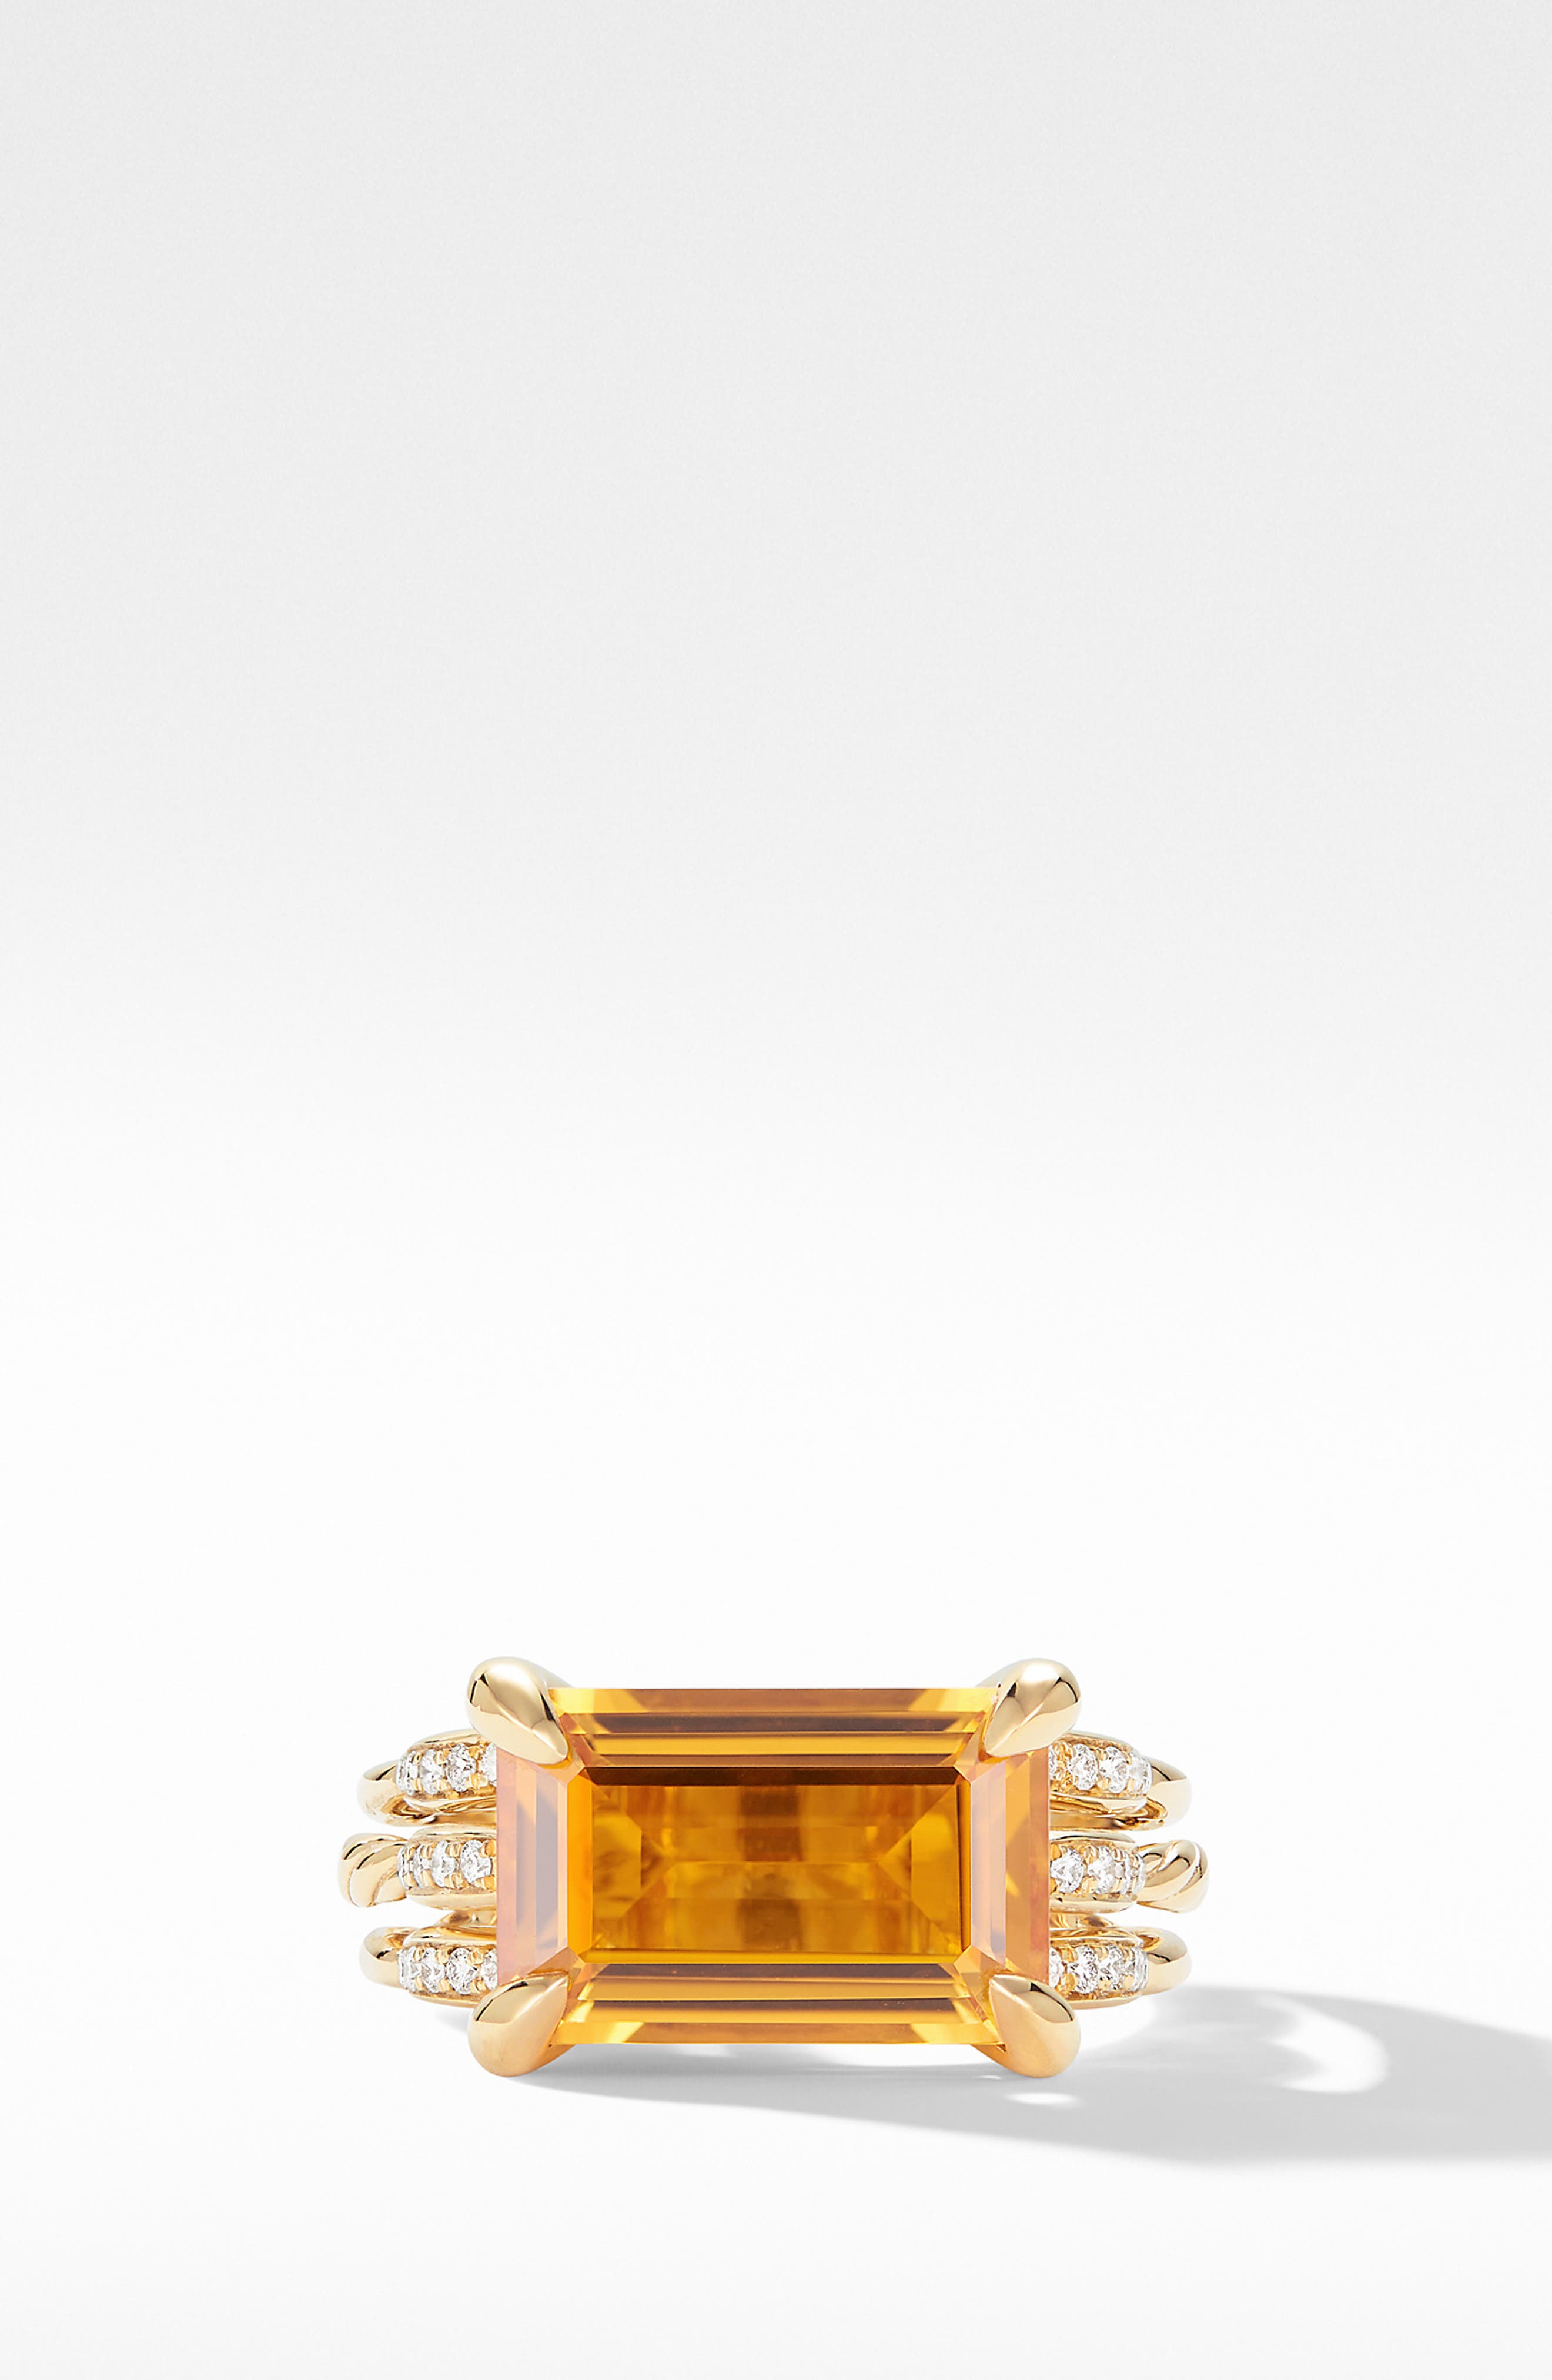 Tides Ring in 18k Gold with Diamonds,                             Alternate thumbnail 3, color,                             GOLD/ CITRINE